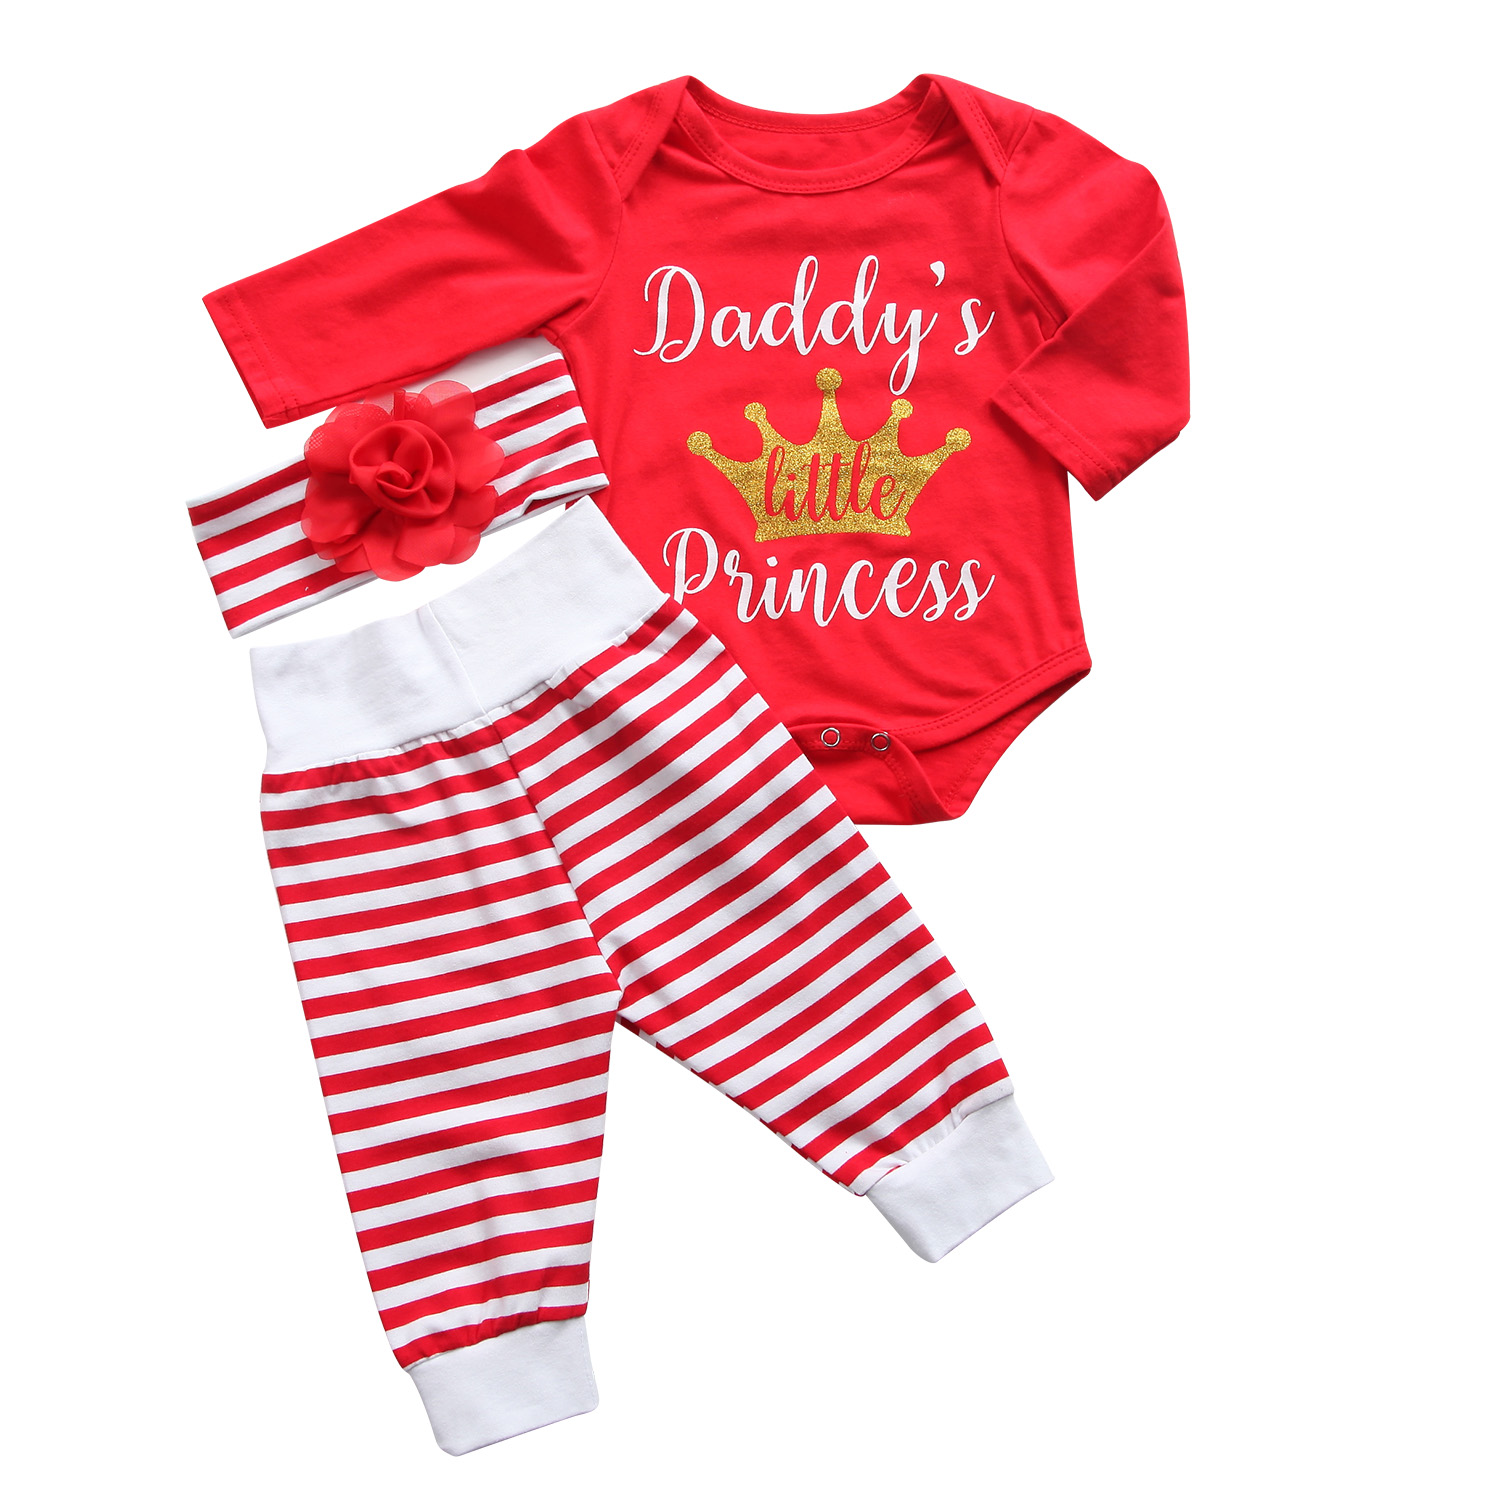 3Ps Newborn Infant Baby Girl Clothes Sets Tops Playsuit Jumpsuit Romper Long Sleeve Pants Outfit Cotton Cute Clothing newborn infant baby girls autumn clothes set cartoon print cotton long sleeve t shirt tops pants 2pcs outfit clothing sets page 8